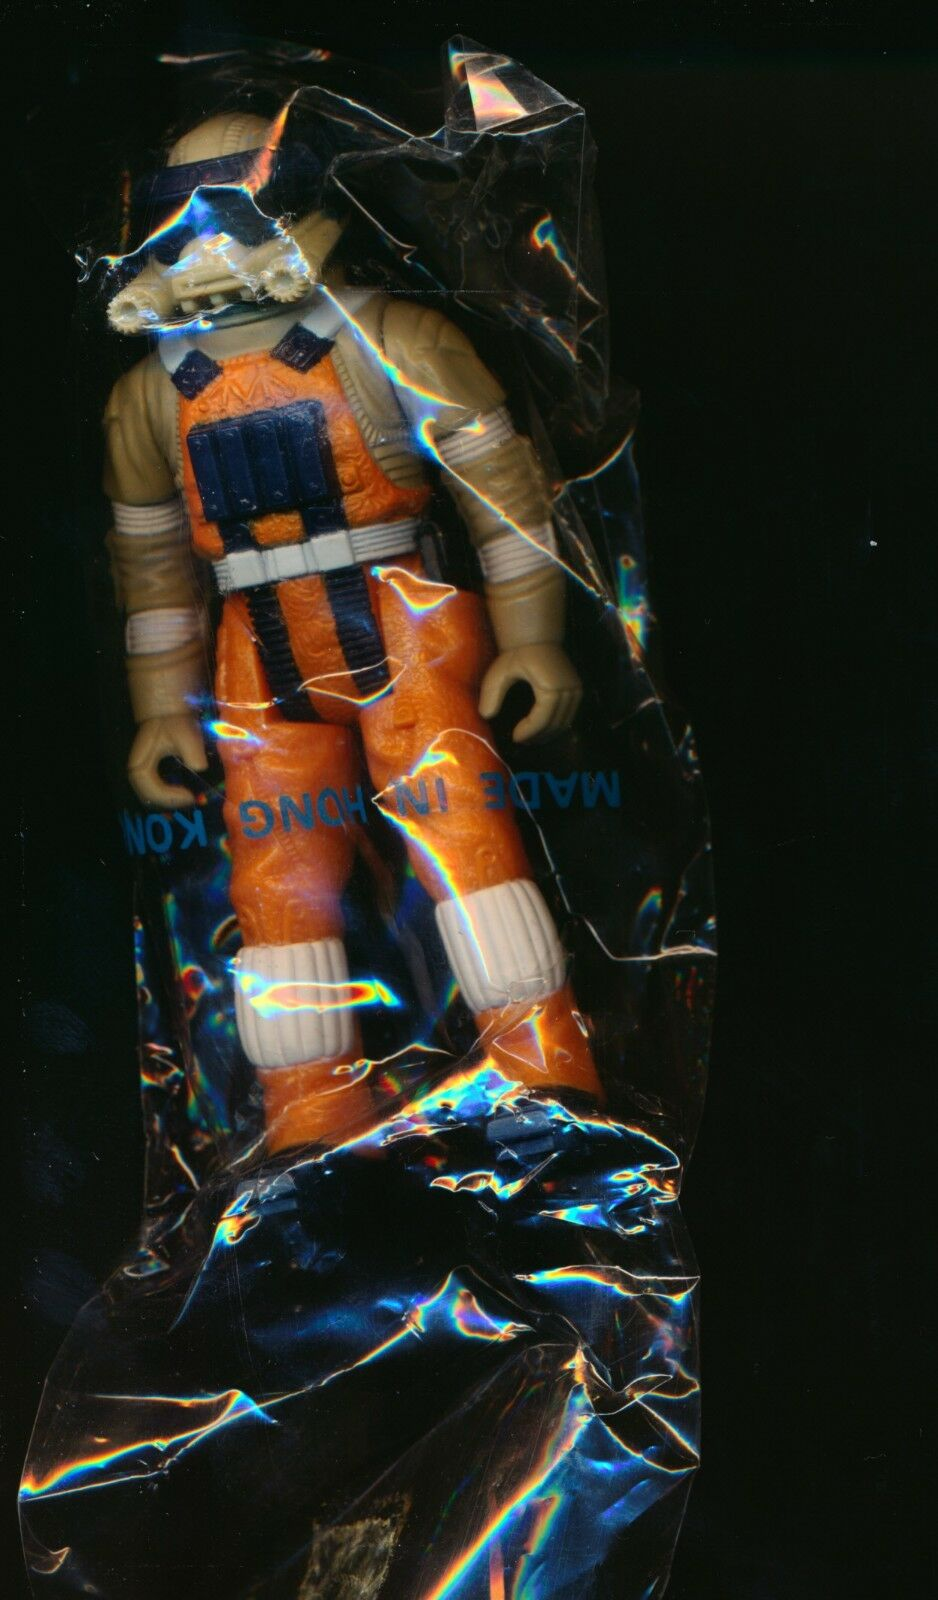 NEW Vintage Robotix Tauron Oxus Space Commander Astronaut Action Figure Toy